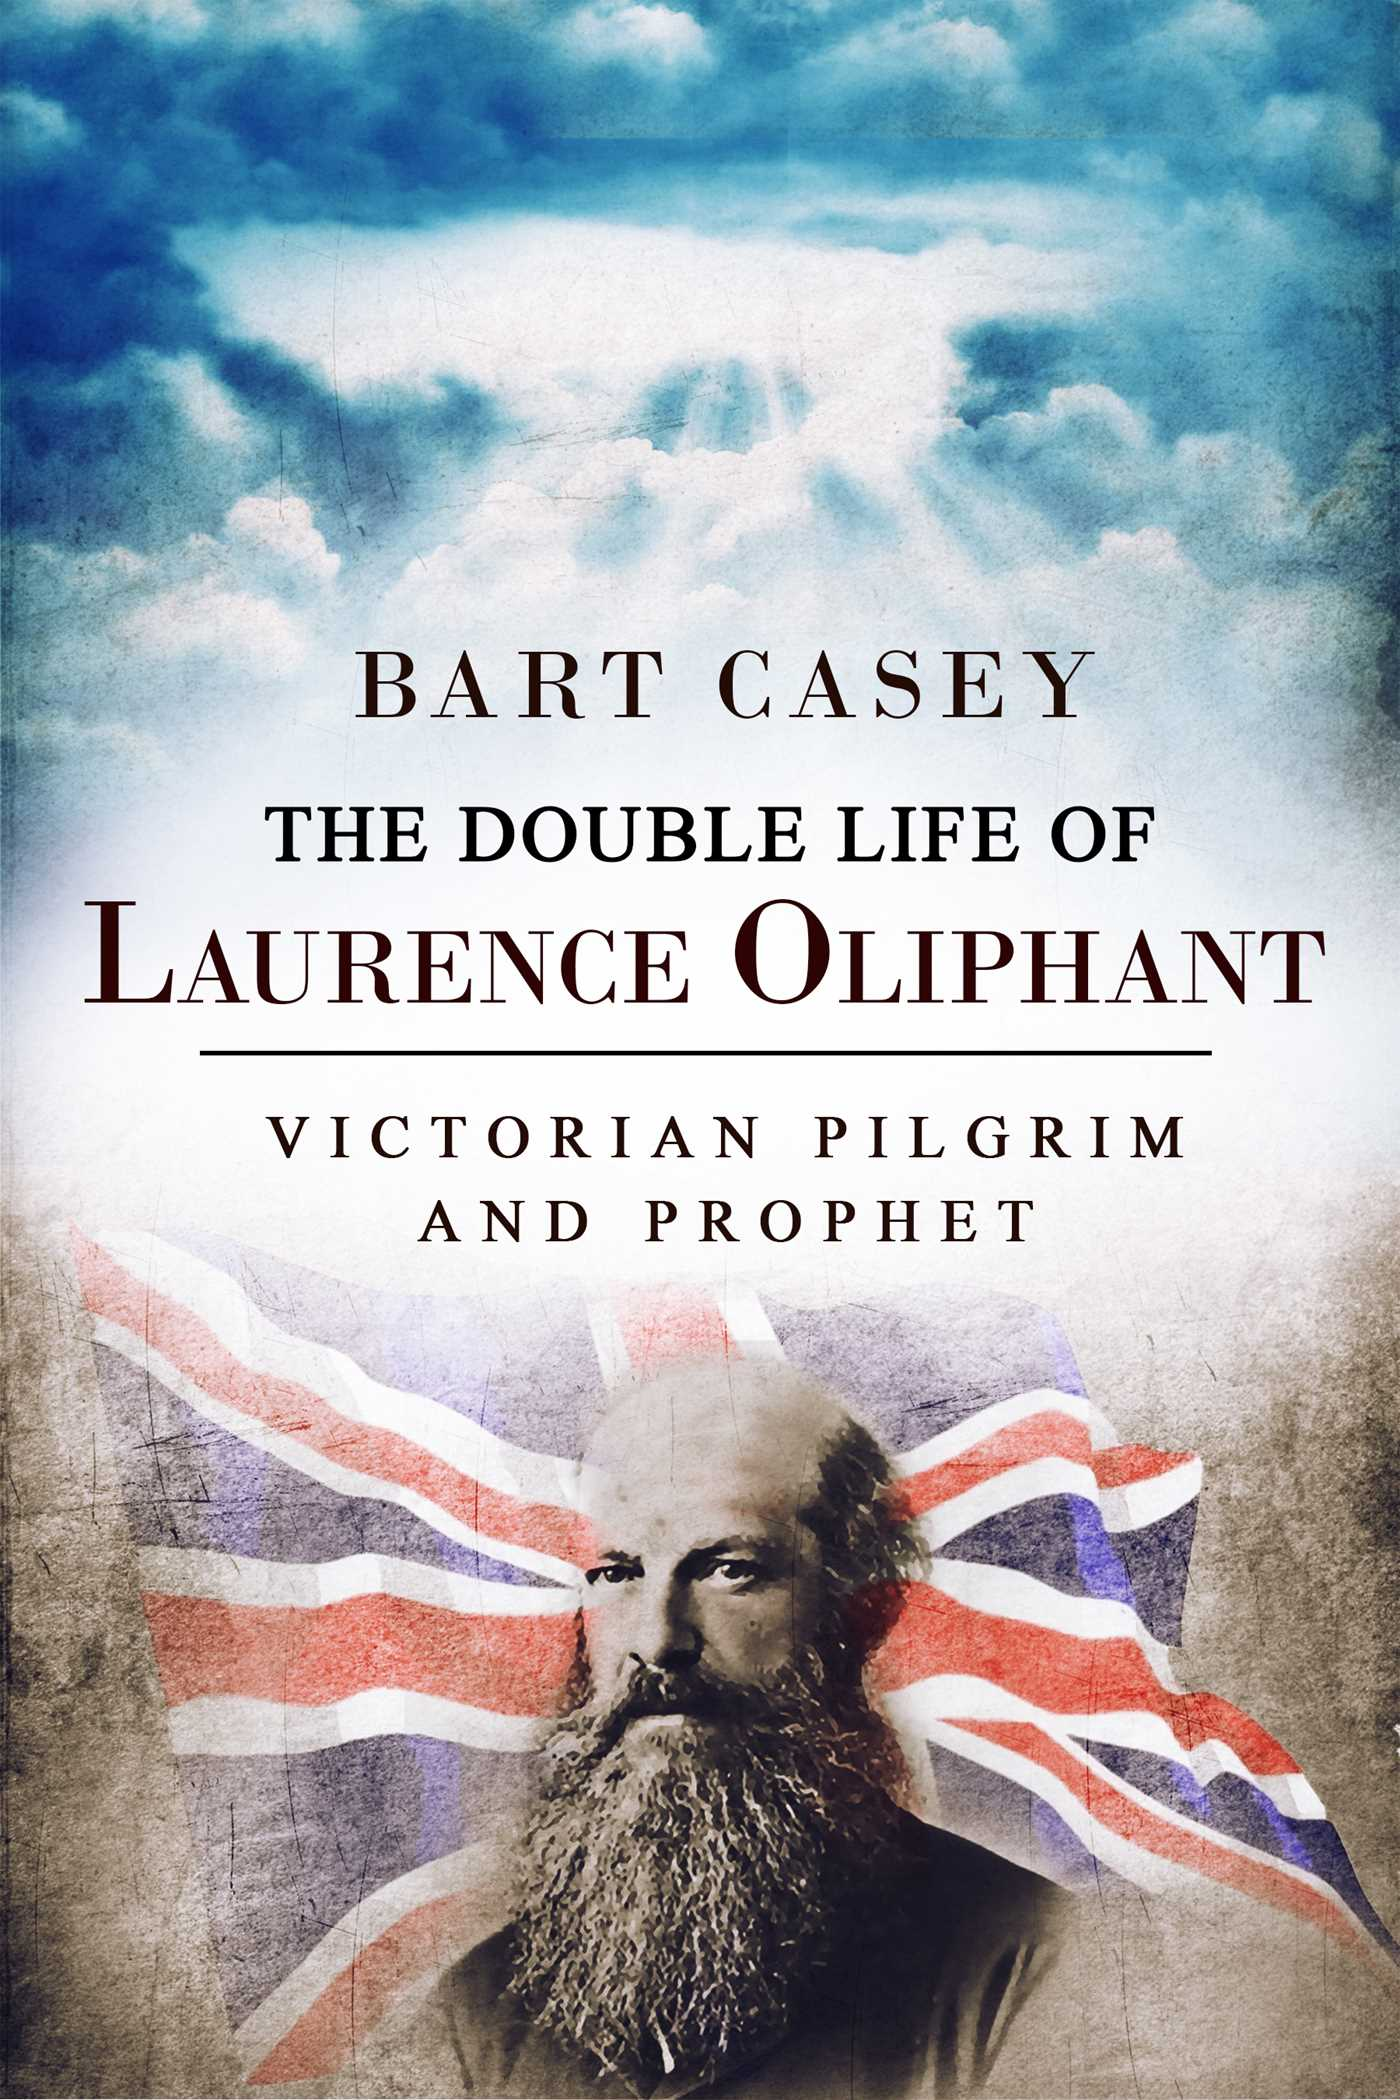 The double life of laurence oliphant 9781618687968 hr